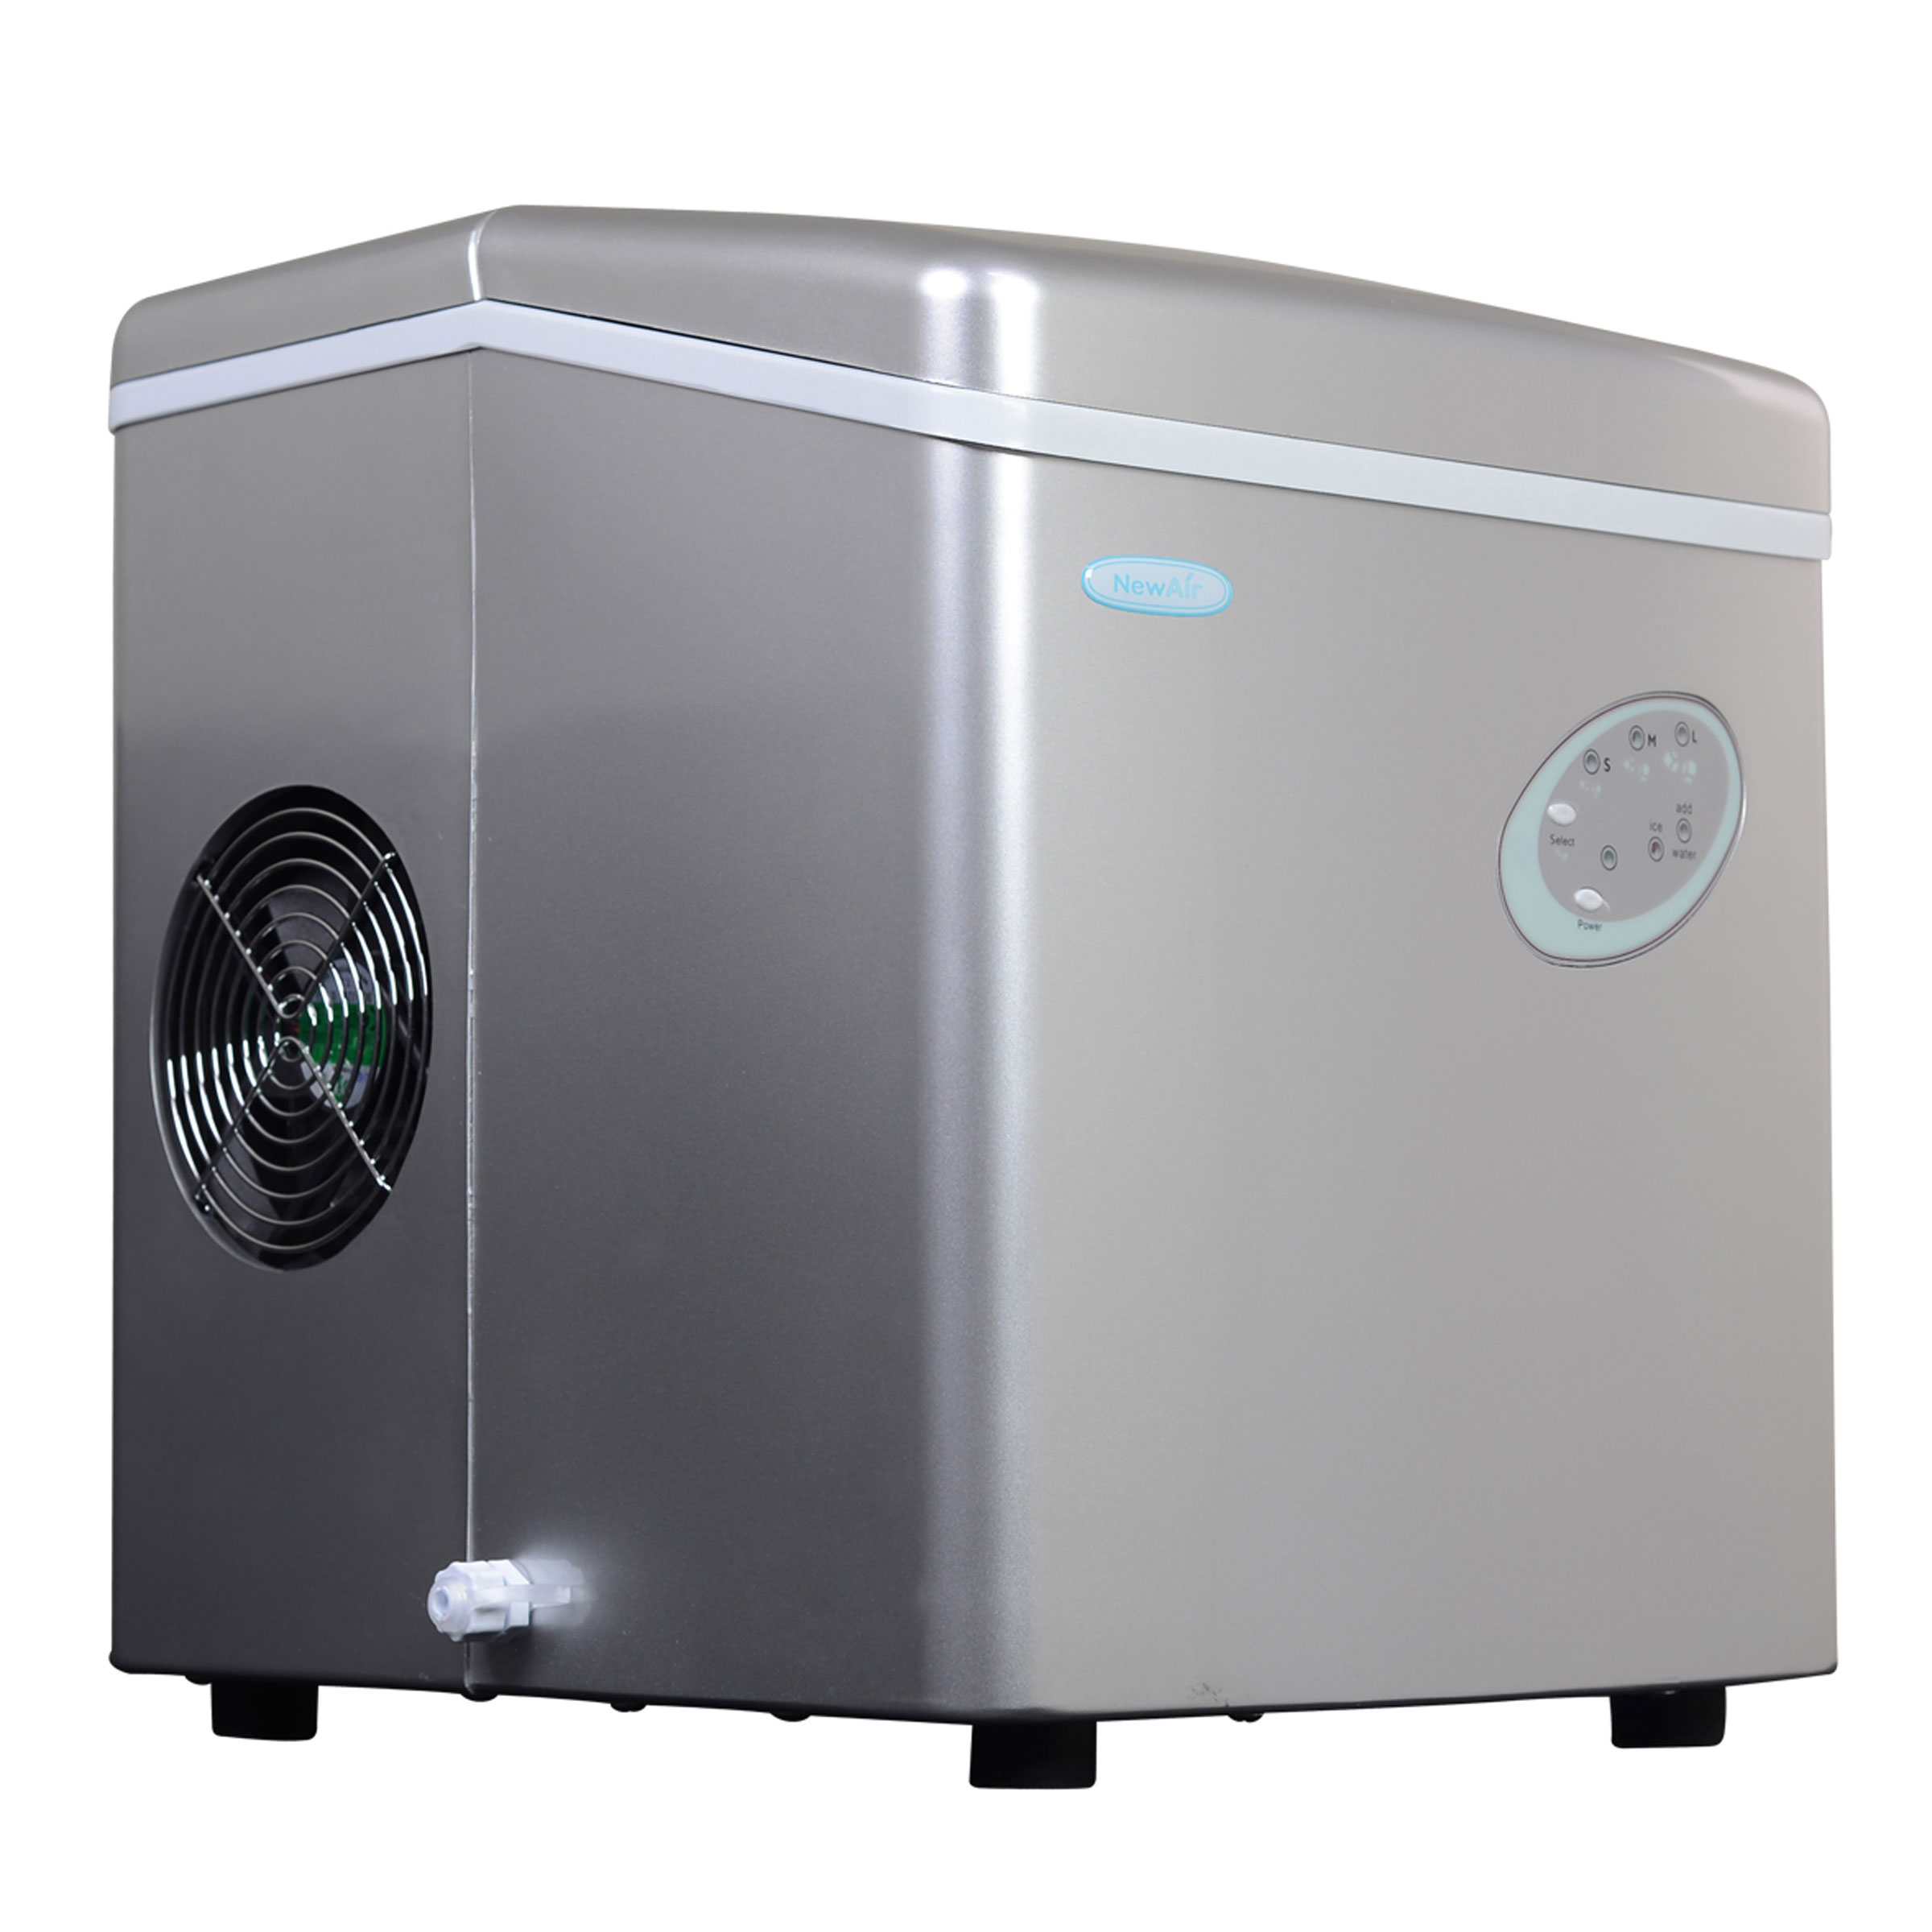 NEWAIR AI-100S Portable Silver Ice Maker 28 lbs per day